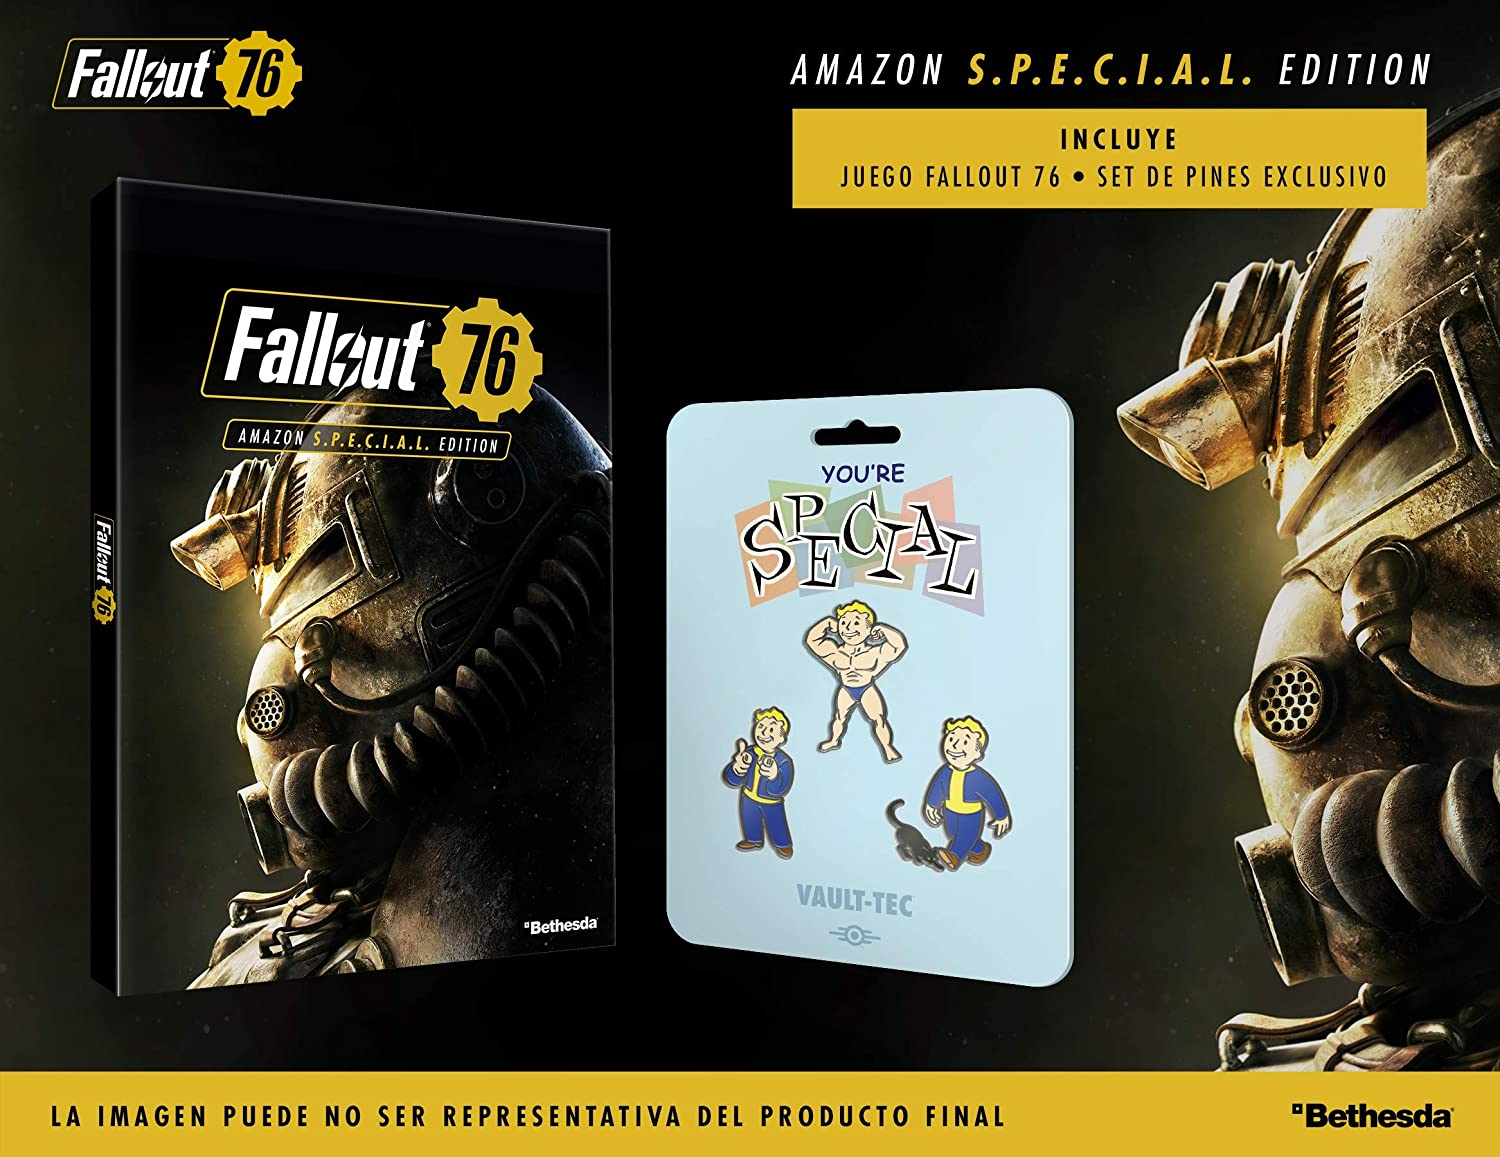 Fallout 76 Amazon S.*.*.C.*.*.L. Edition (Edición Exclusiva Amazon): Amazon.es: Videojuegos